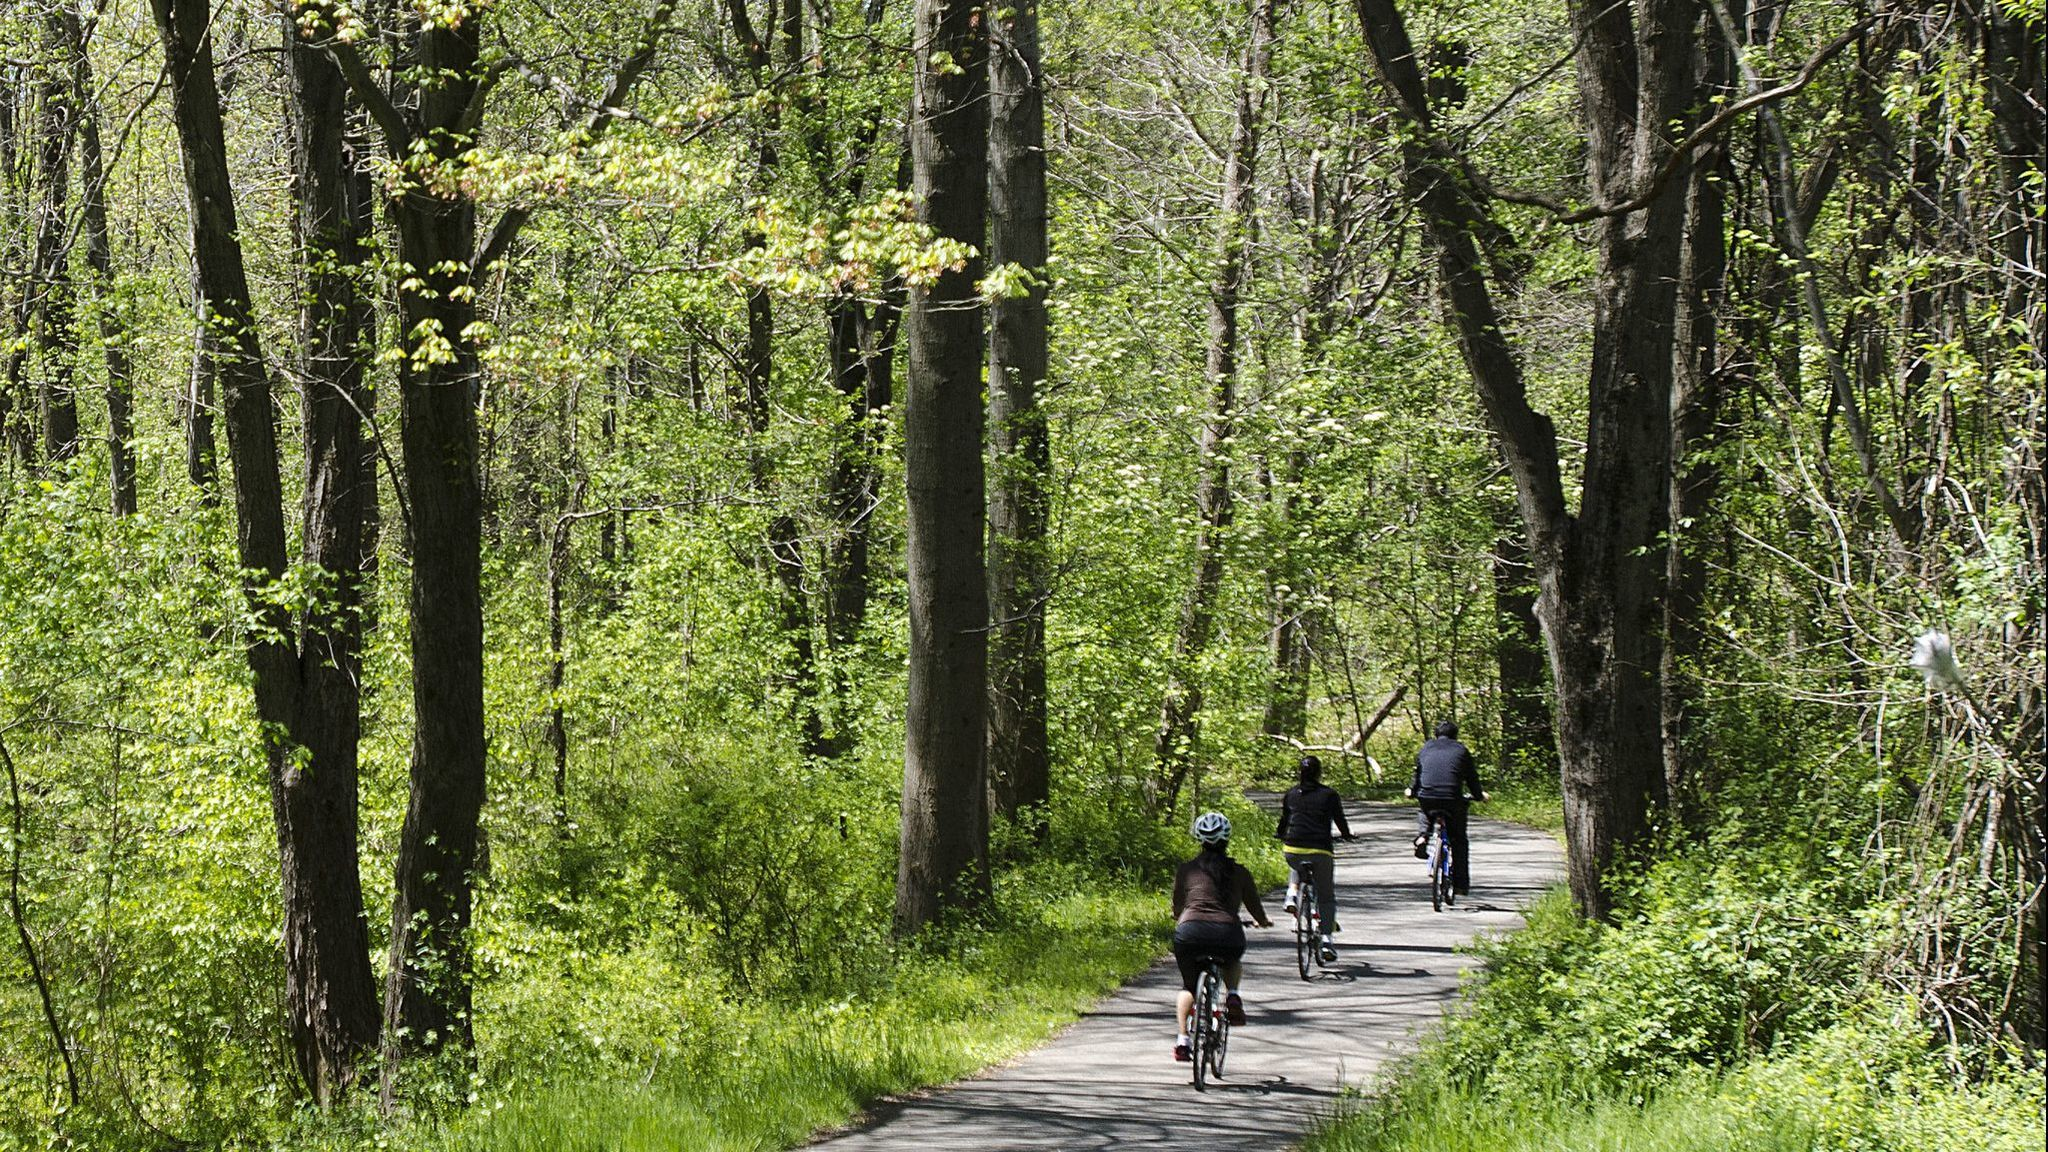 Work to clear trees on Patuxent Branch Trail in Howard County to begin June 24